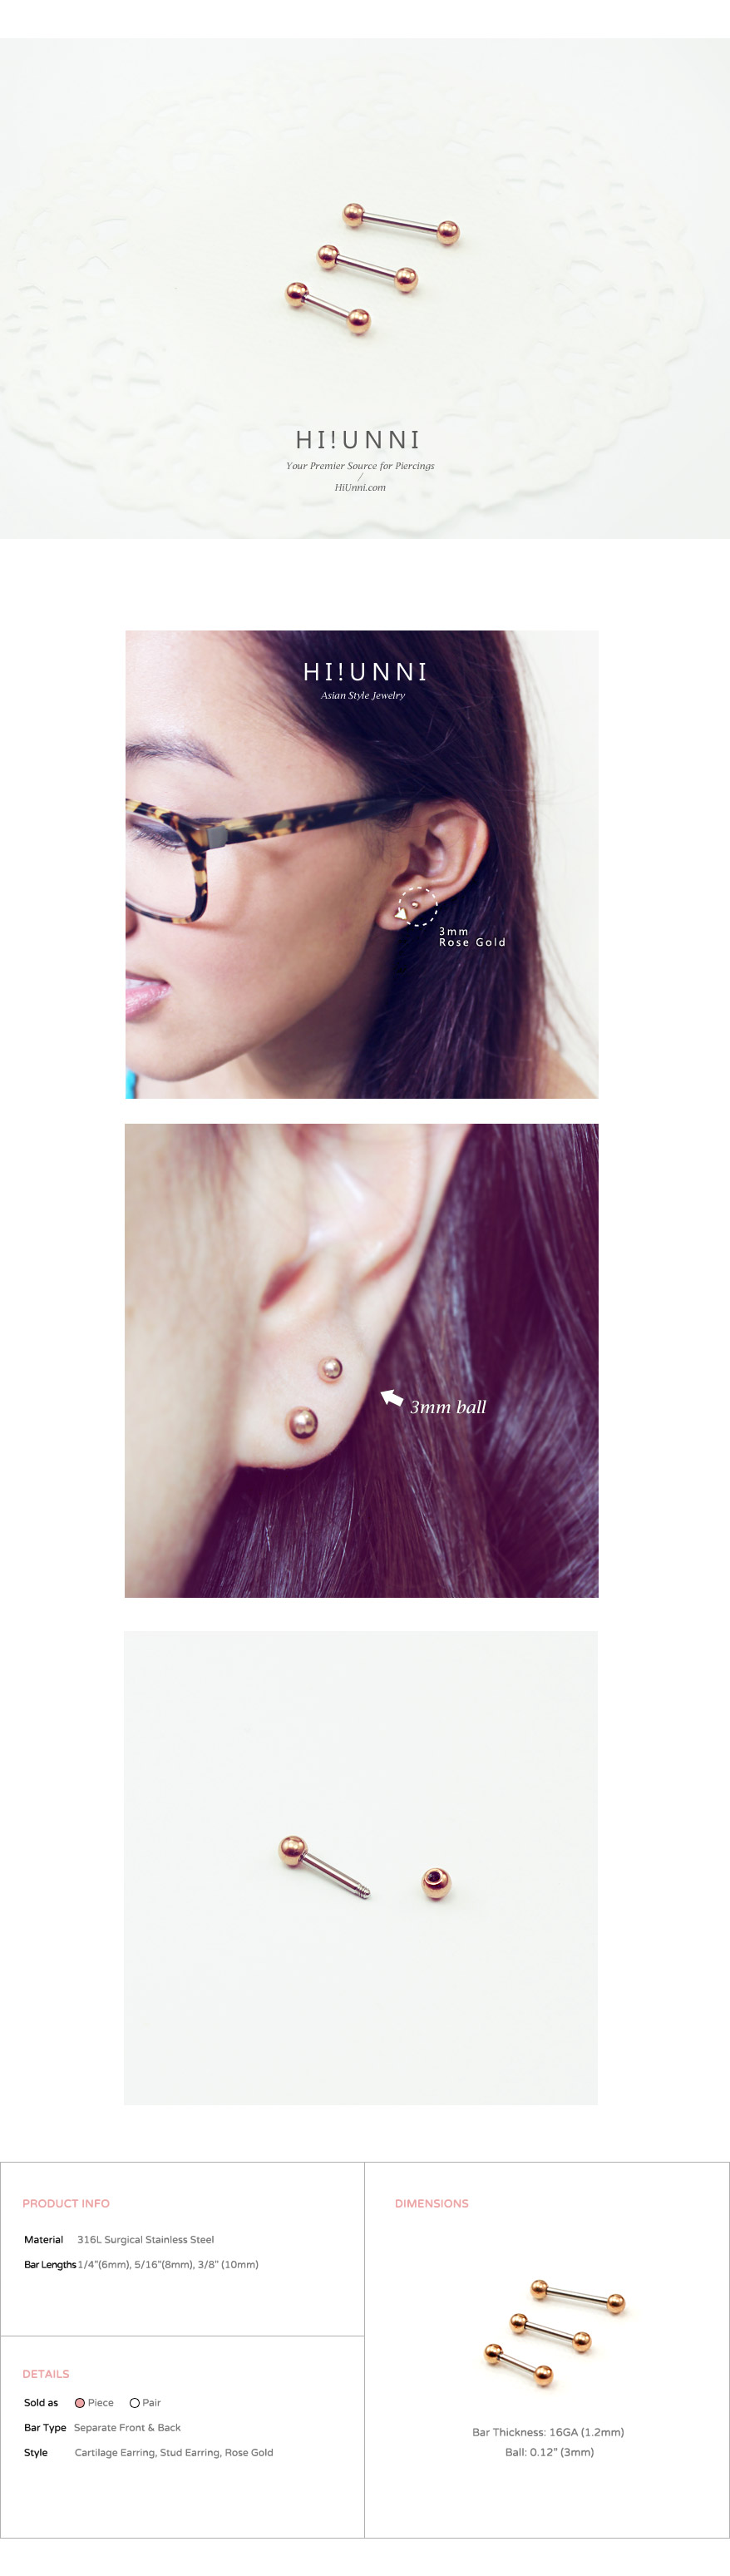 ear_studs_piercing_Cartilage_16g_316l_Stainless_Steel_earring_tragus_barbell_3mm_rose_gold_4